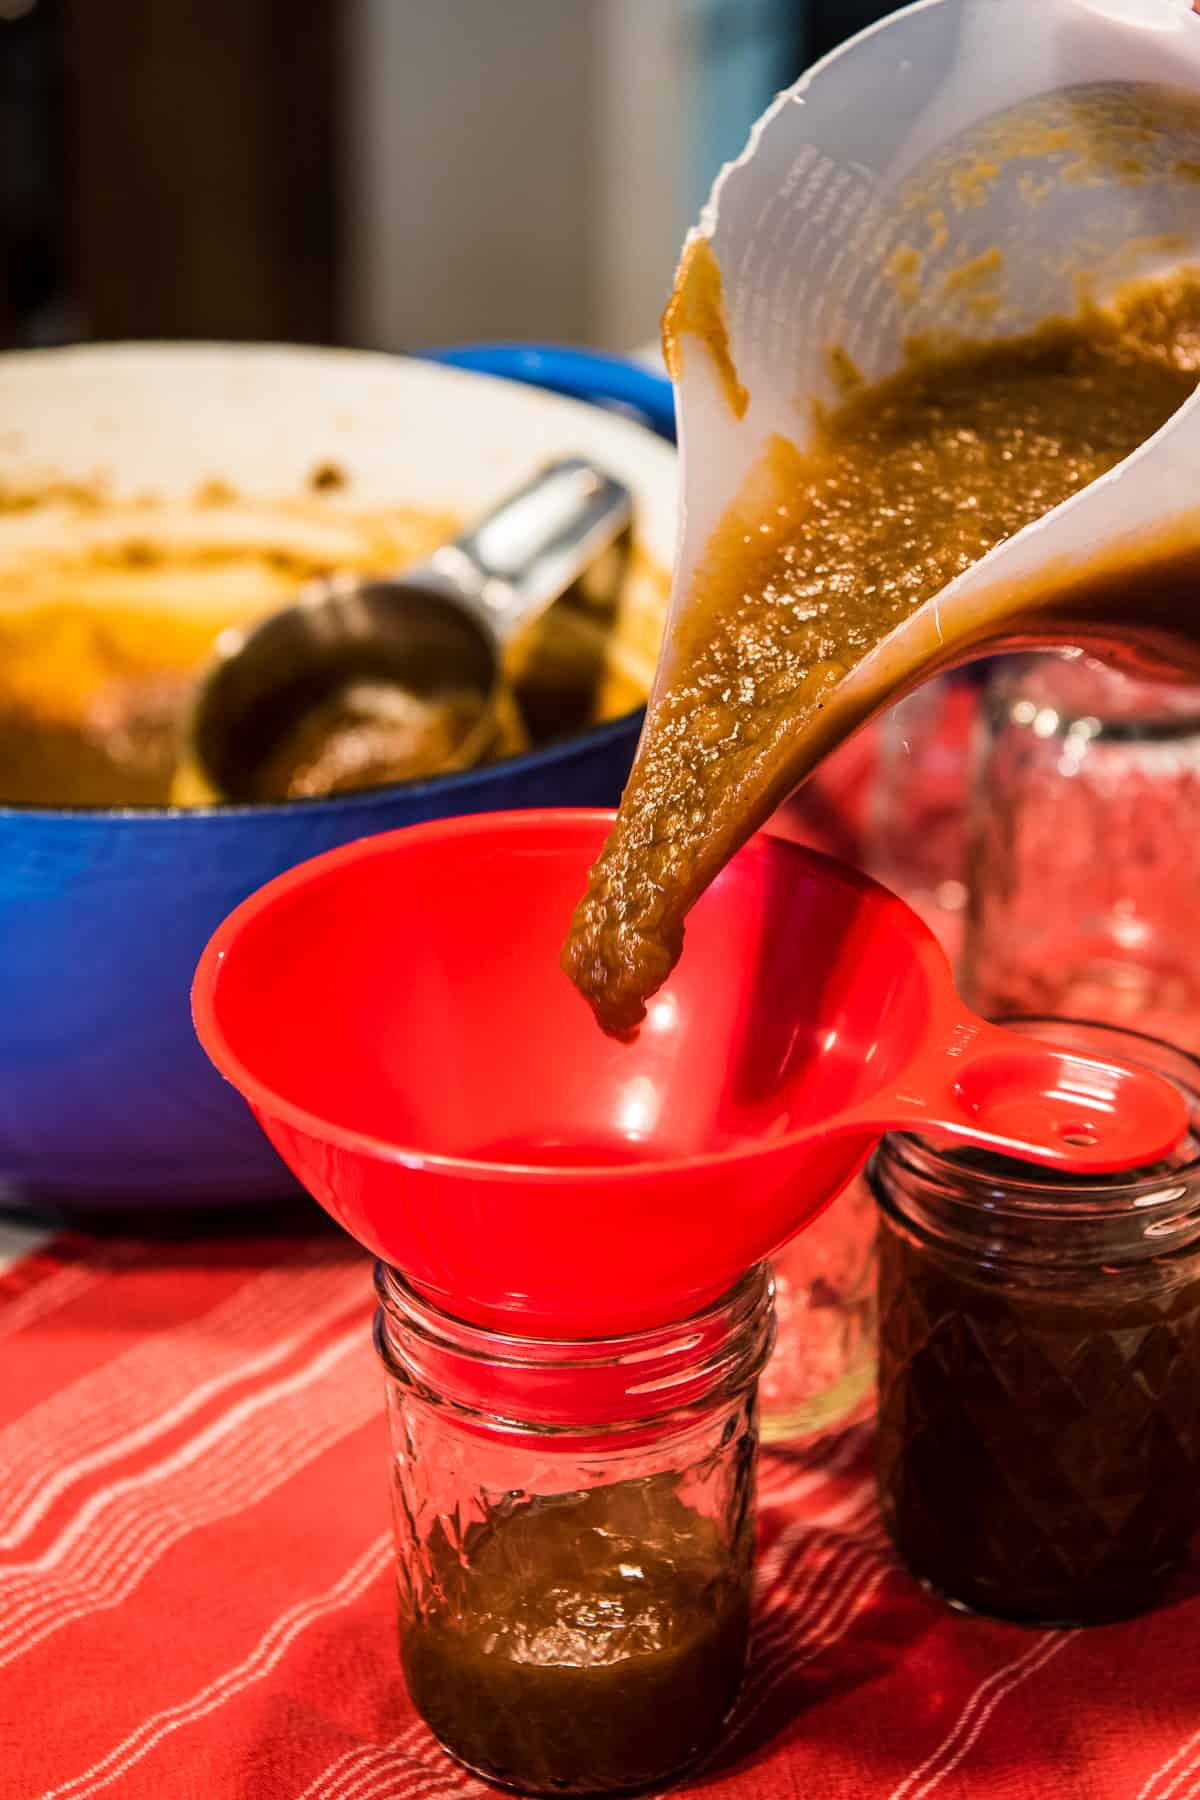 pouring easy stovetop apple butter from funnel pitcher into jelly jar using red jar funnel and funnel pitcher